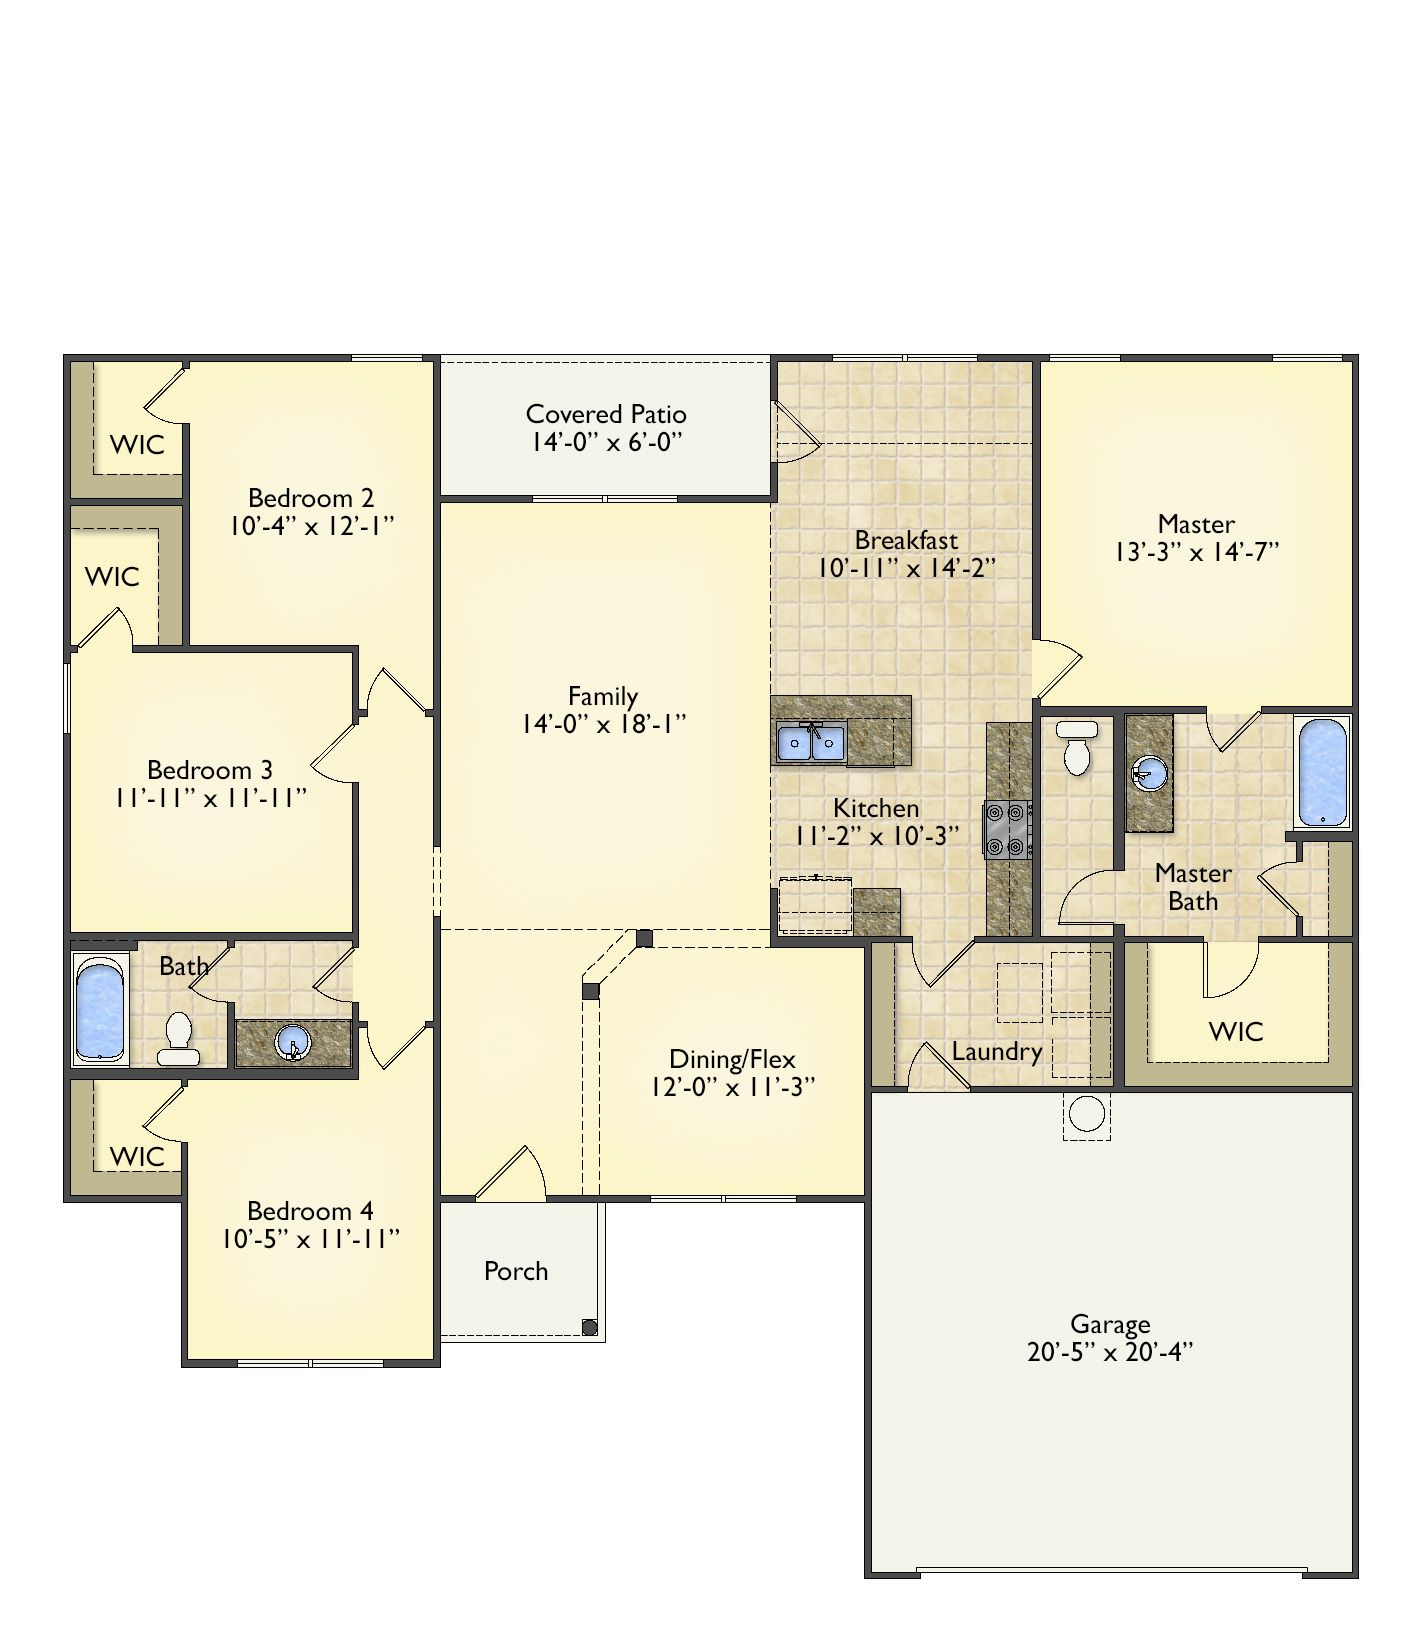 Richfield floorplans image